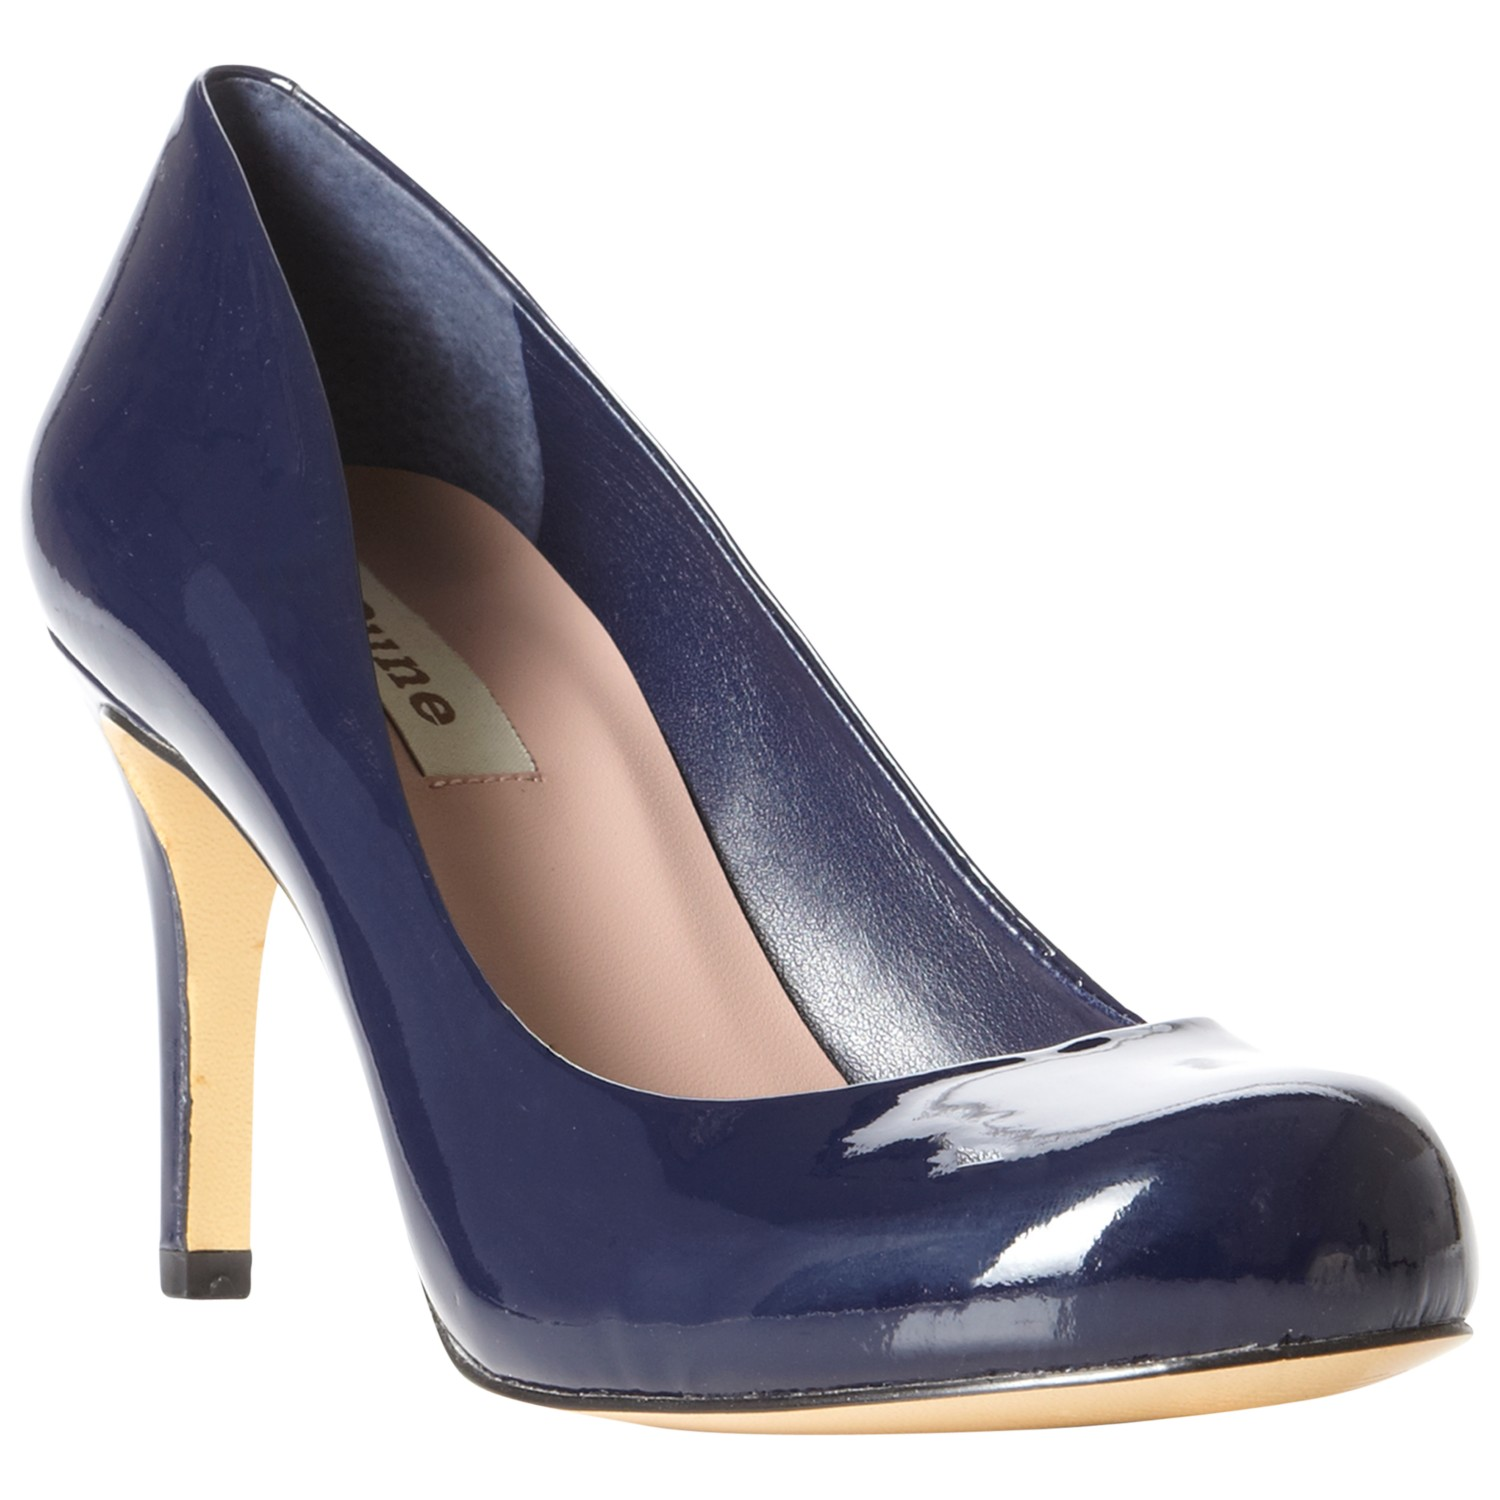 c17696956eb Dune Patent Leather Stiletto Heel Court Shoes in Blue - Lyst